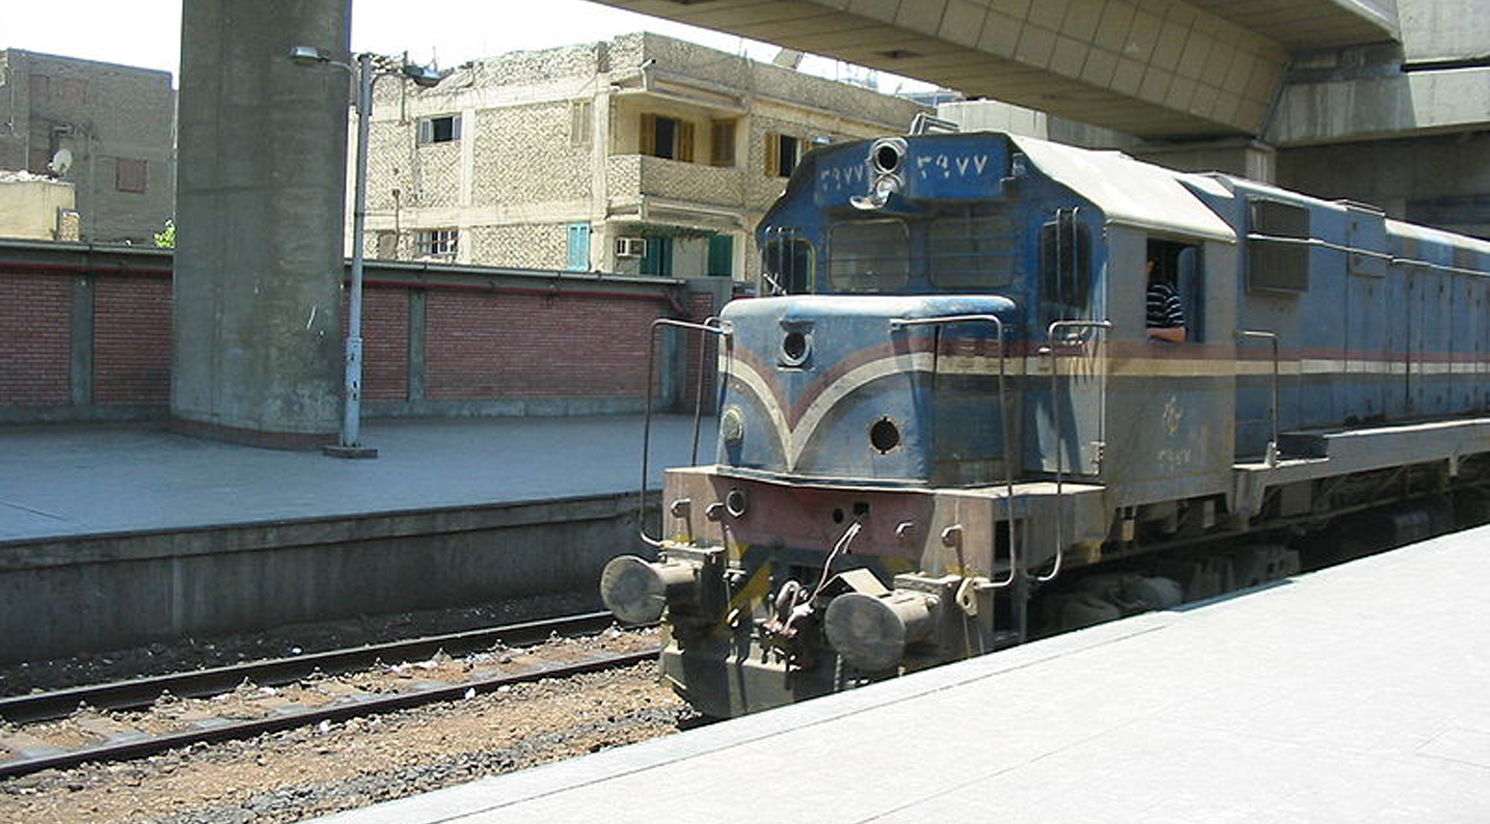 Egyptian National Railways Locomotive Maintenance Services